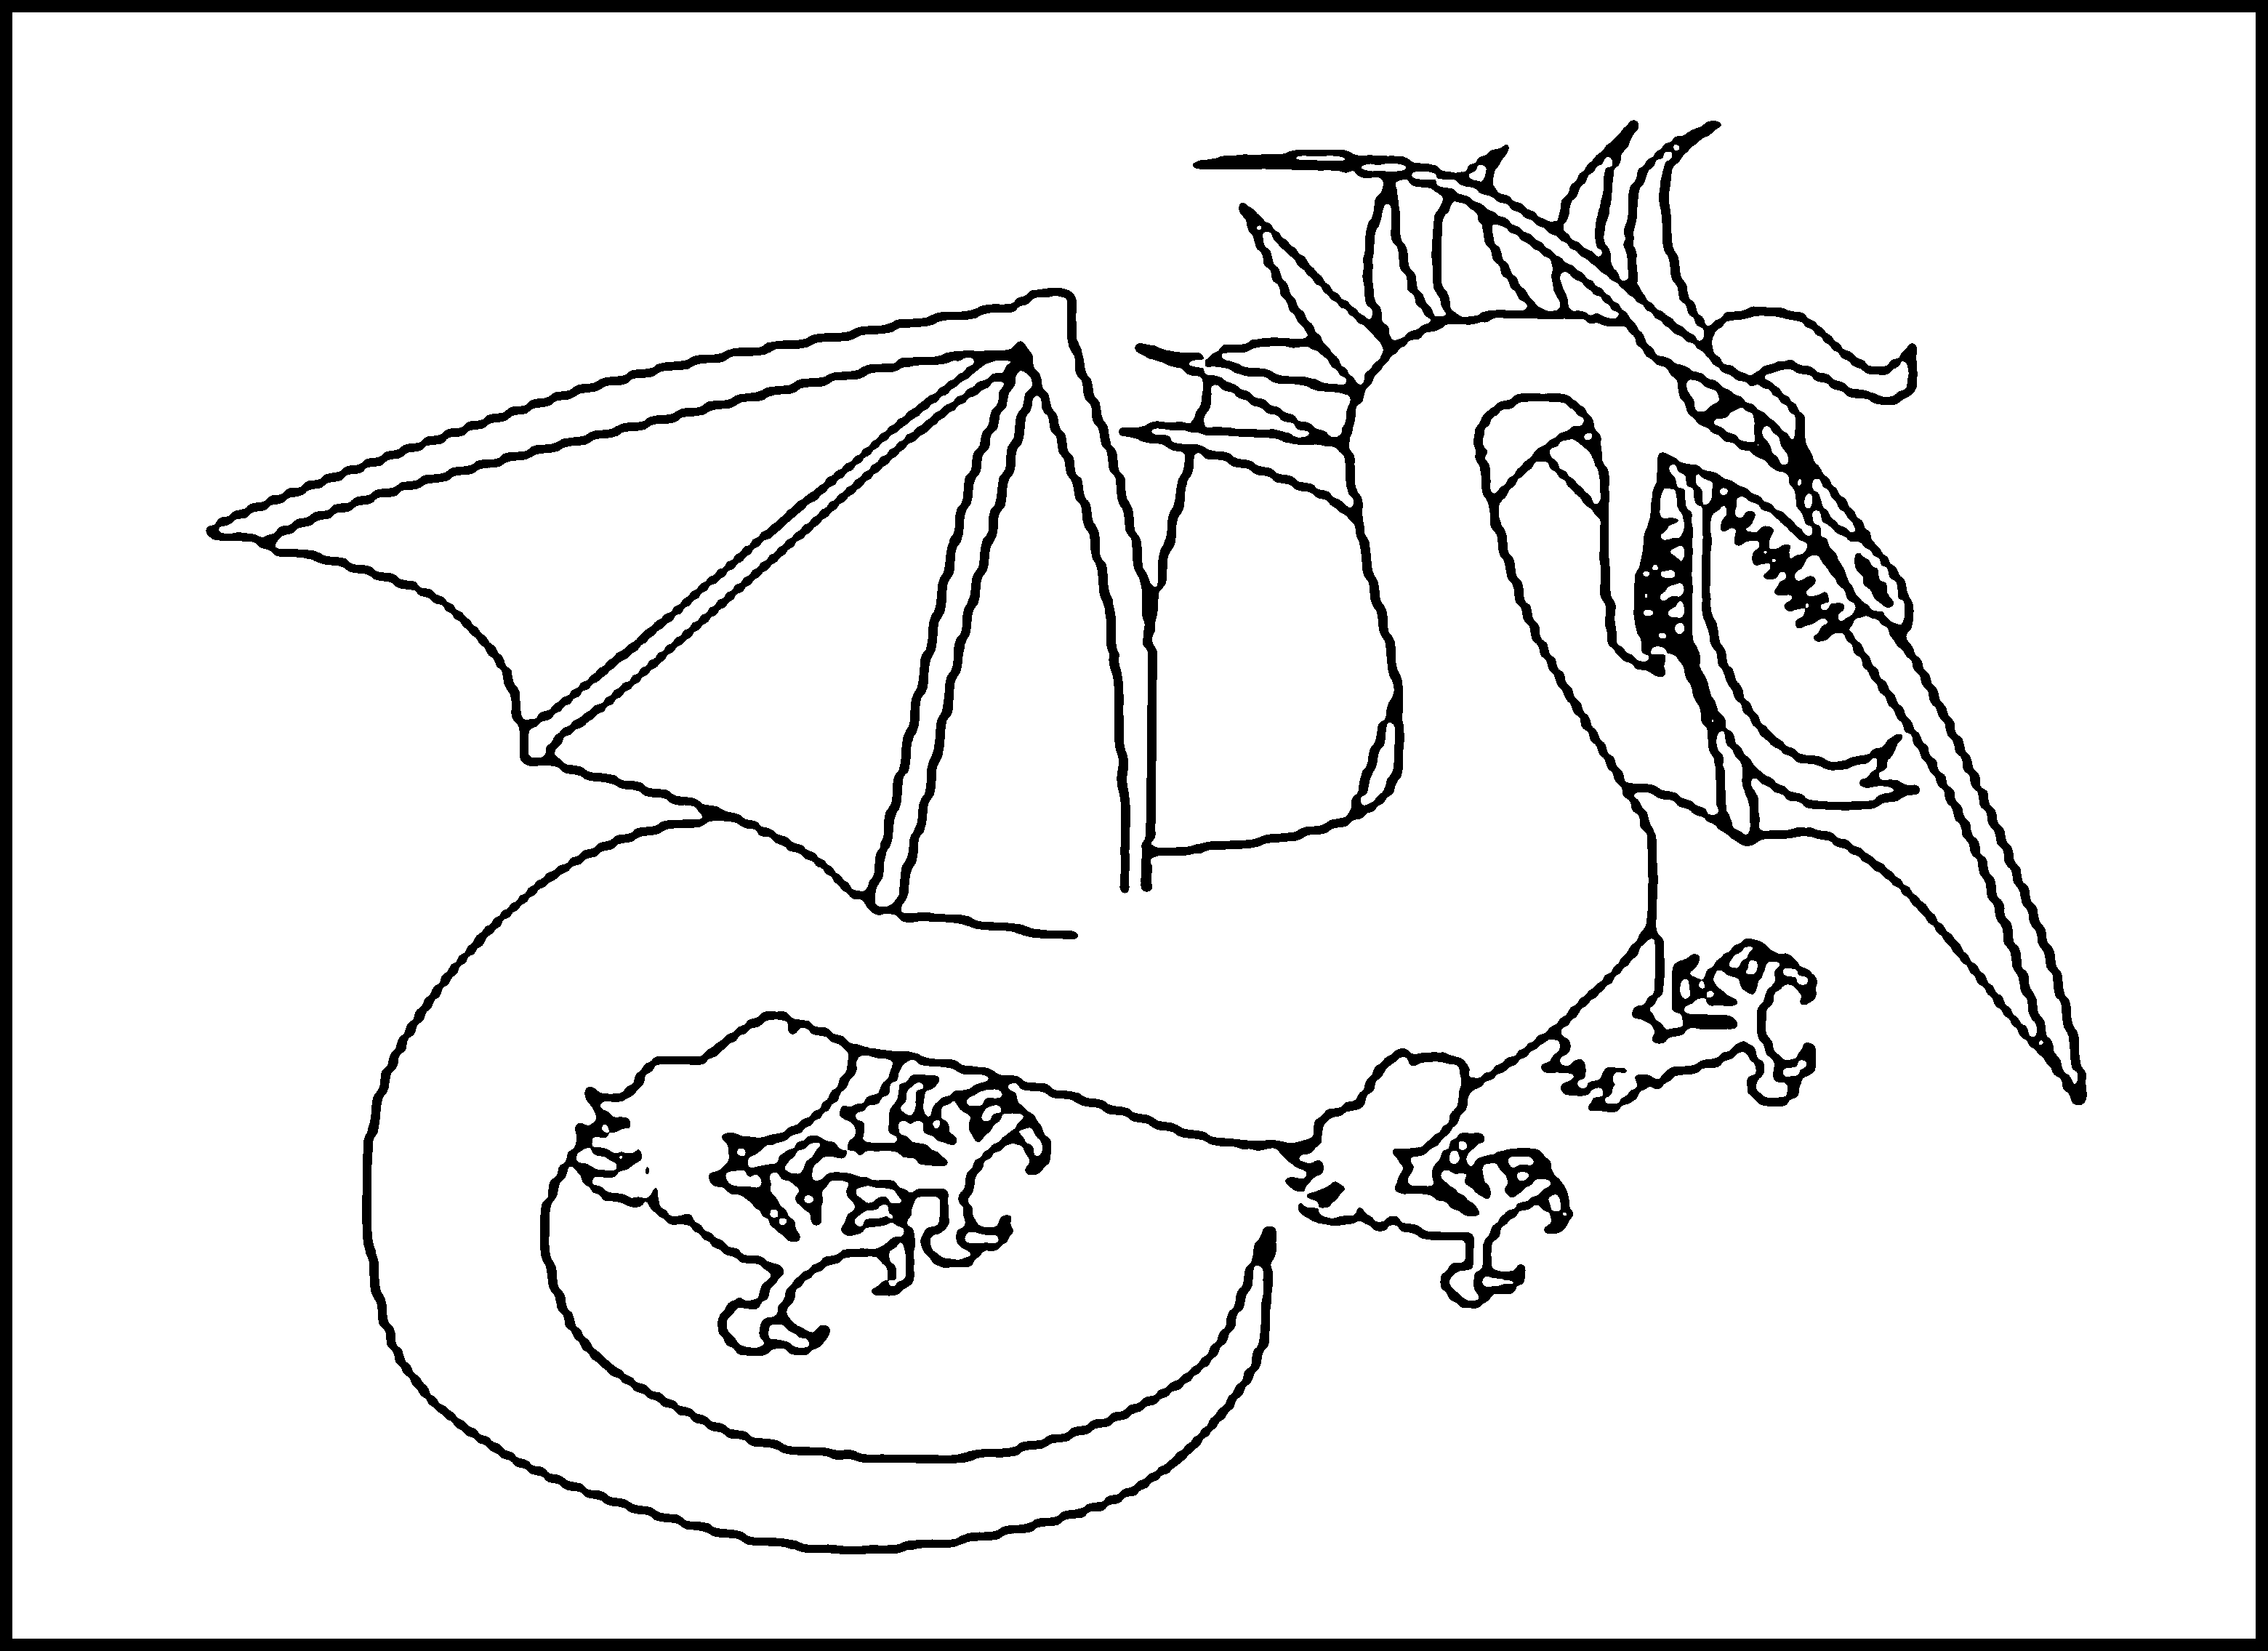 Volcano coloring pages to print - Dragon Printable Coloring Pages